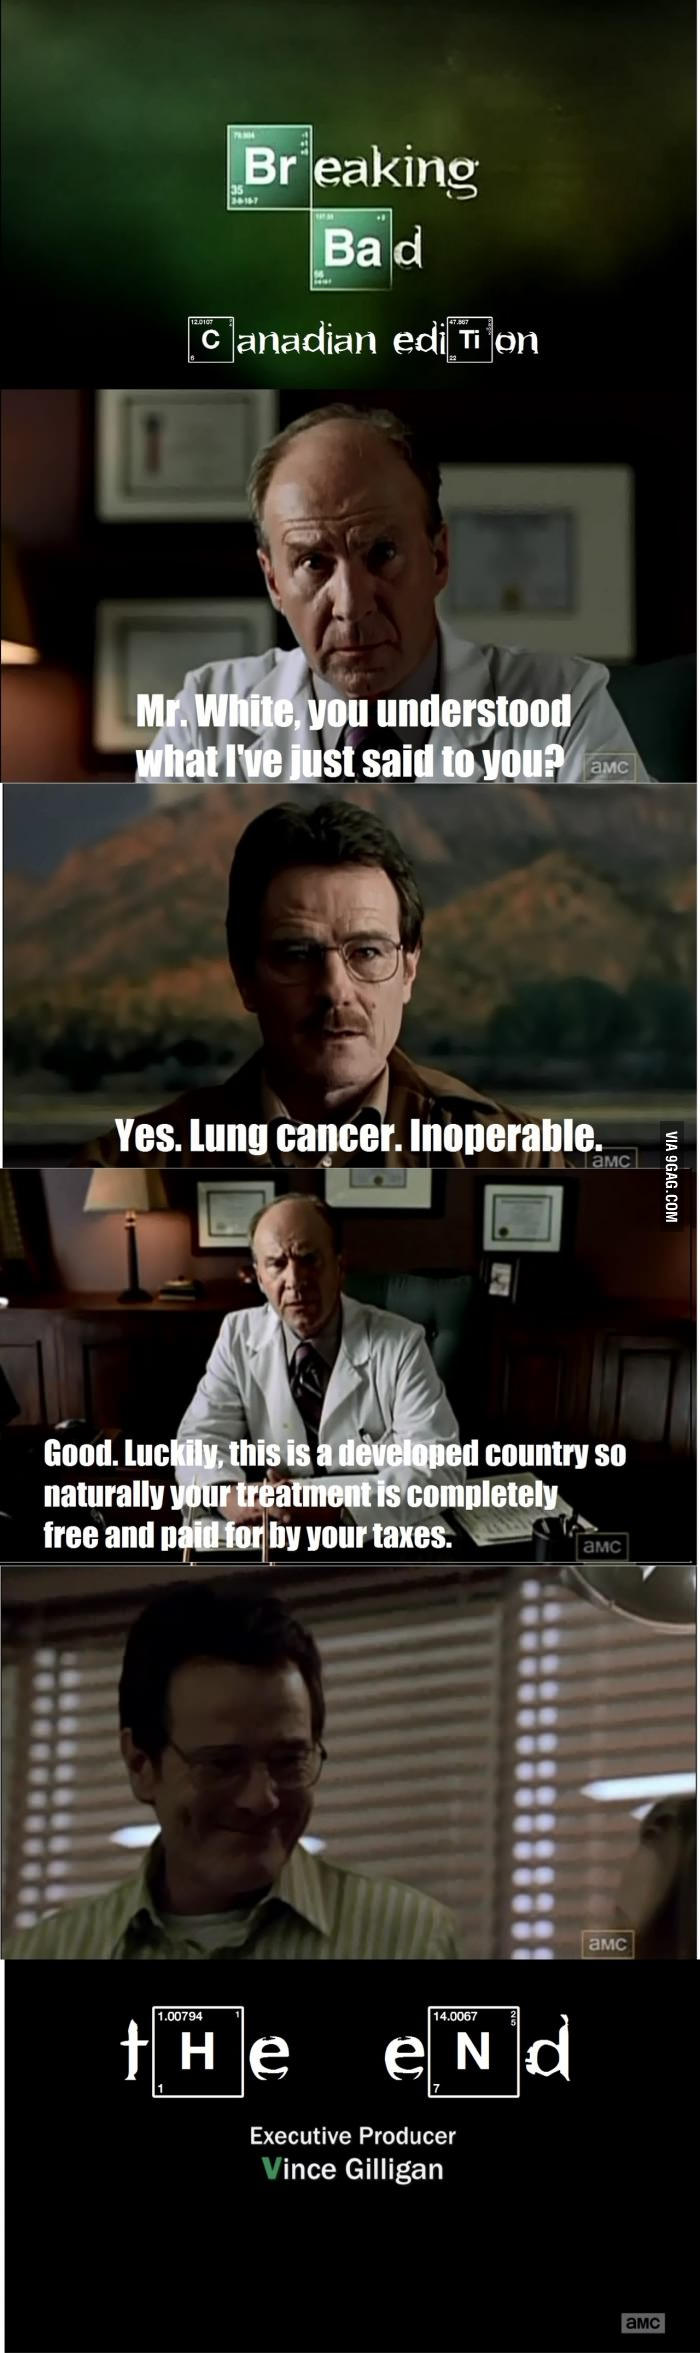 breaking bad canadian edition